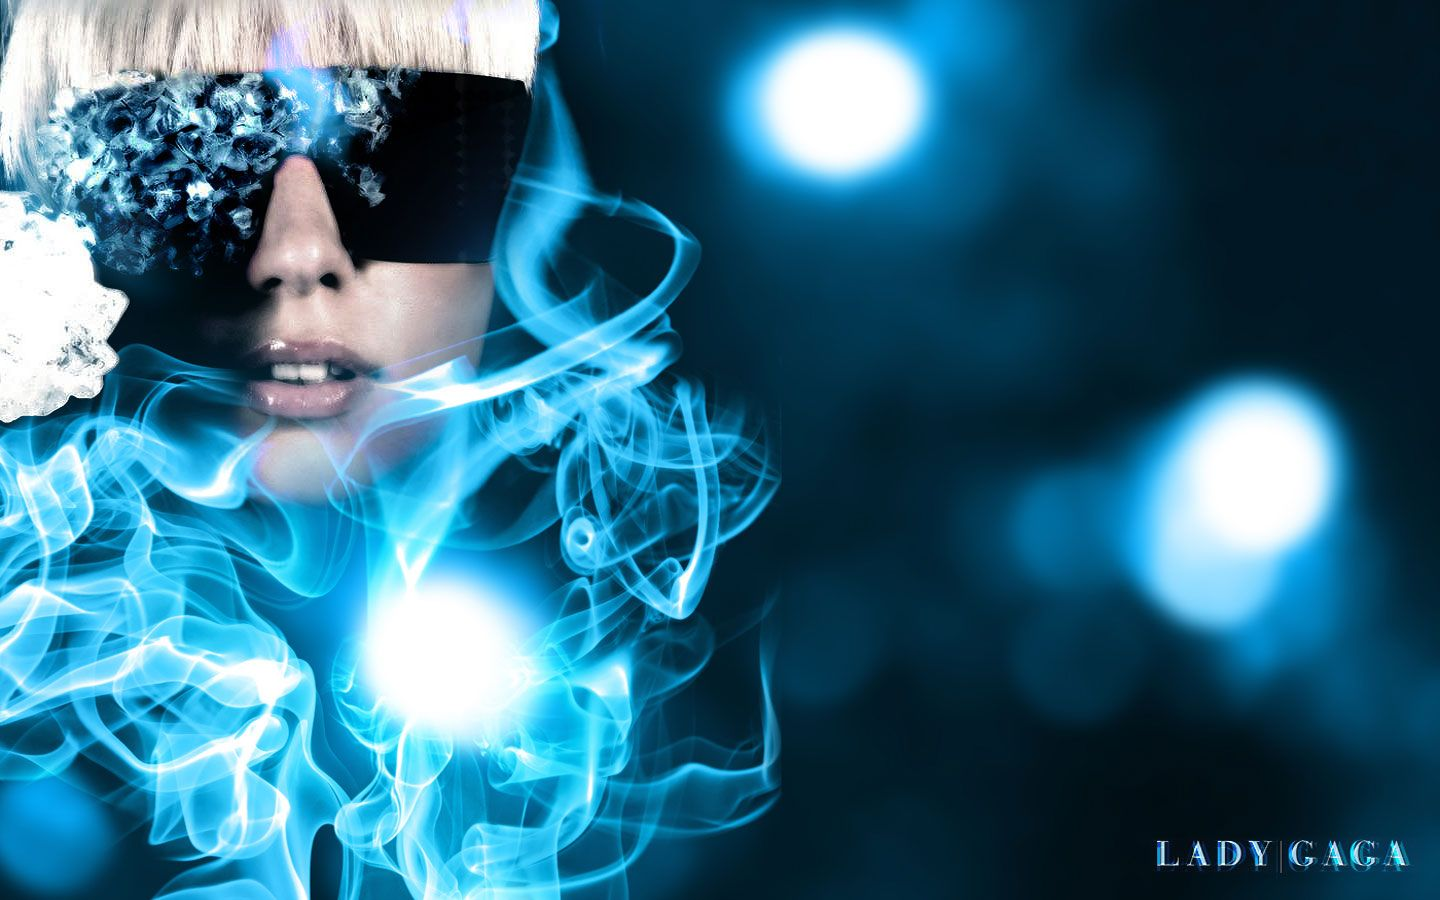 Lady Gaga Wallpapers Free Download Fine Photos 1440x900